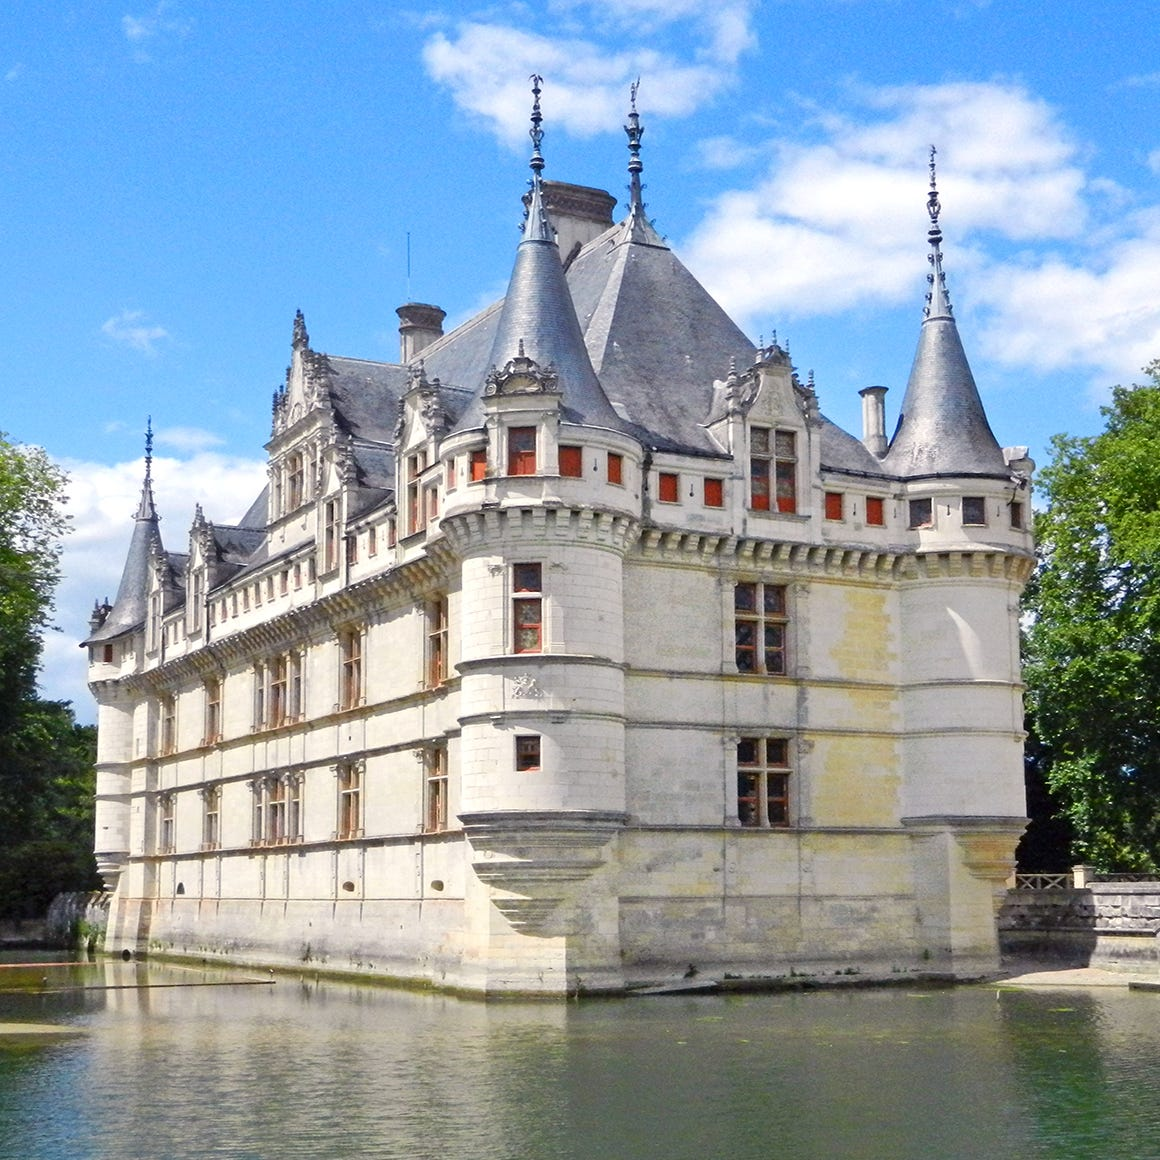 After several years of being covered in scaffolding, the Château d'Azay-le-Rideau has returned to its romantic glory.